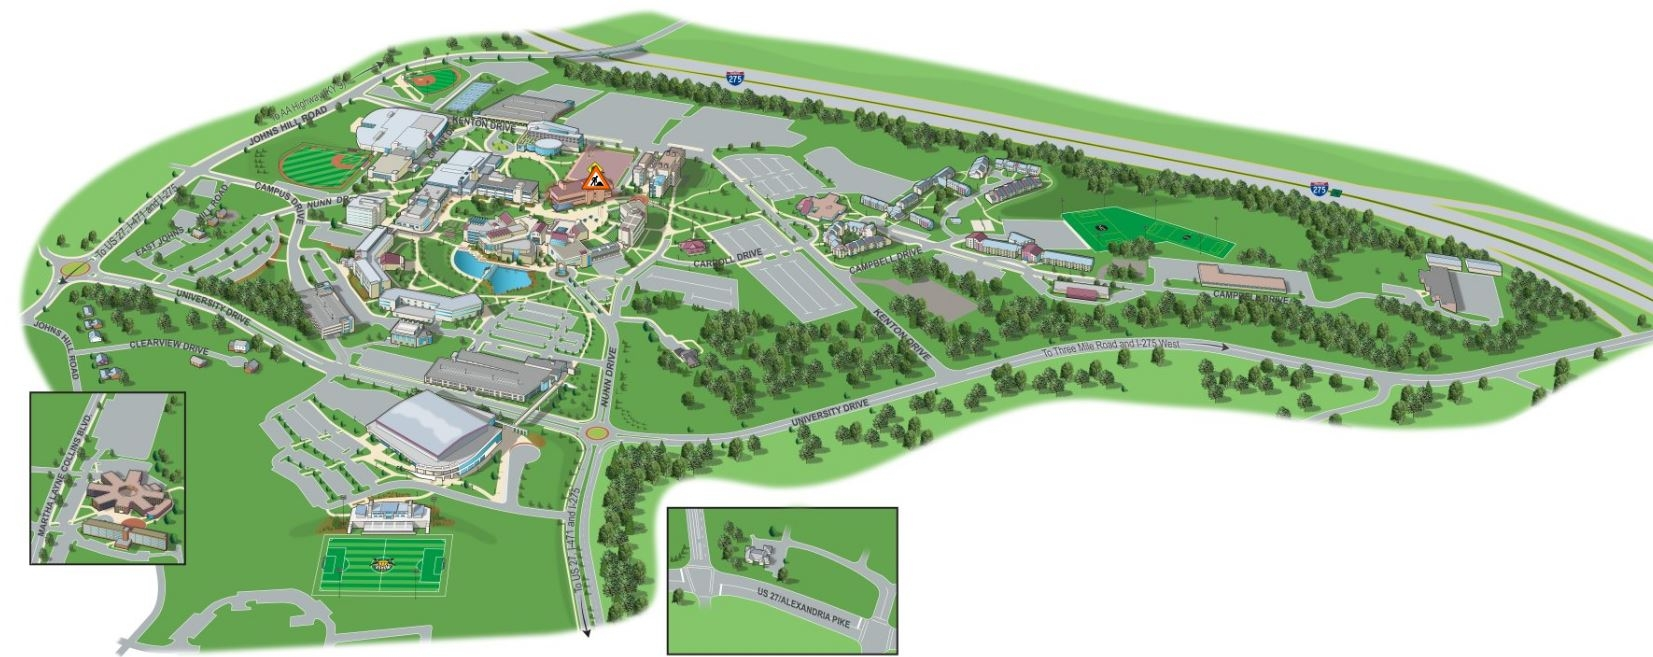 Campus Maps : Northern Kentucky University, Greater